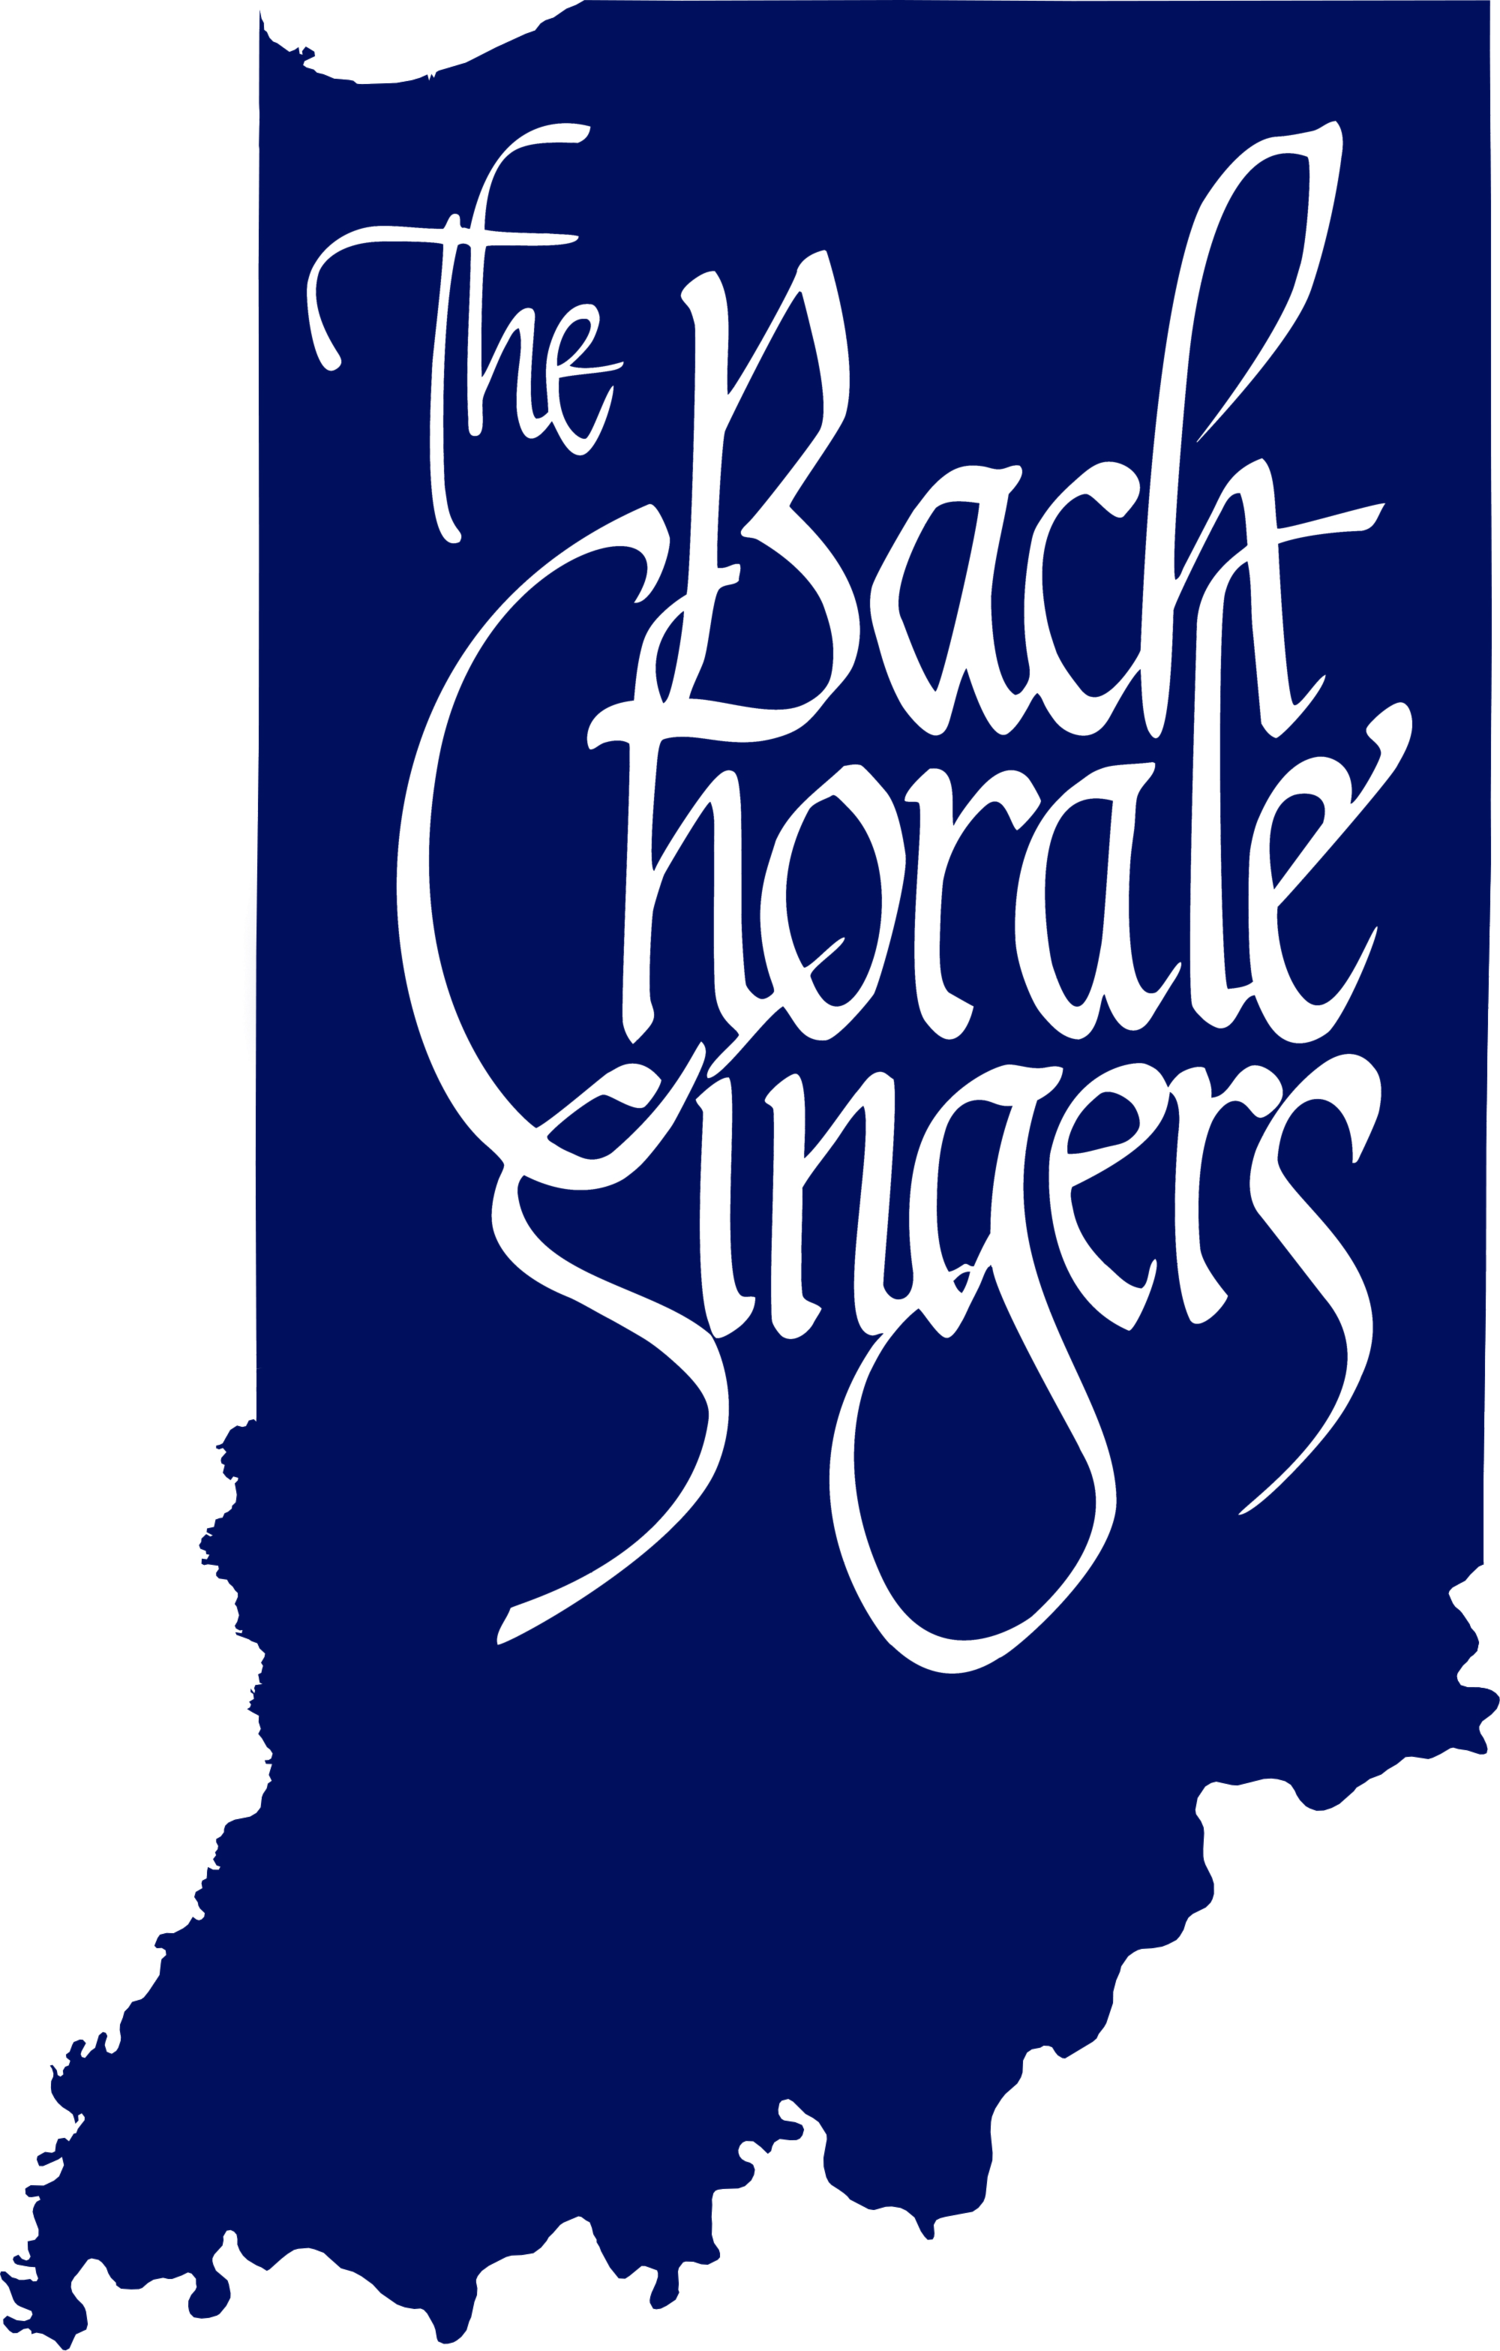 The Bach Chorale Singers